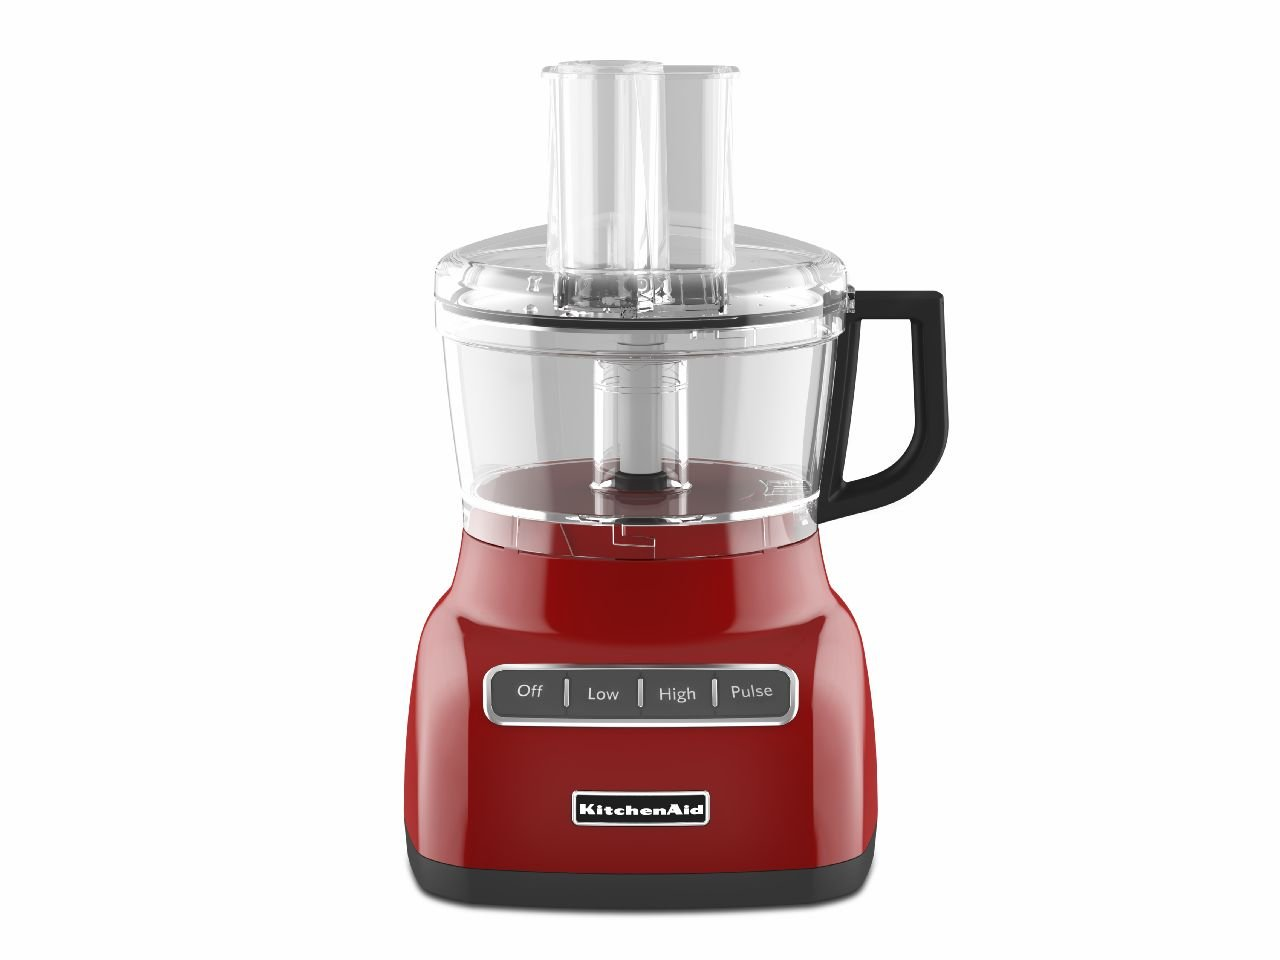 kitchenaid new 7 cup food processor with exactslice system. Black Bedroom Furniture Sets. Home Design Ideas